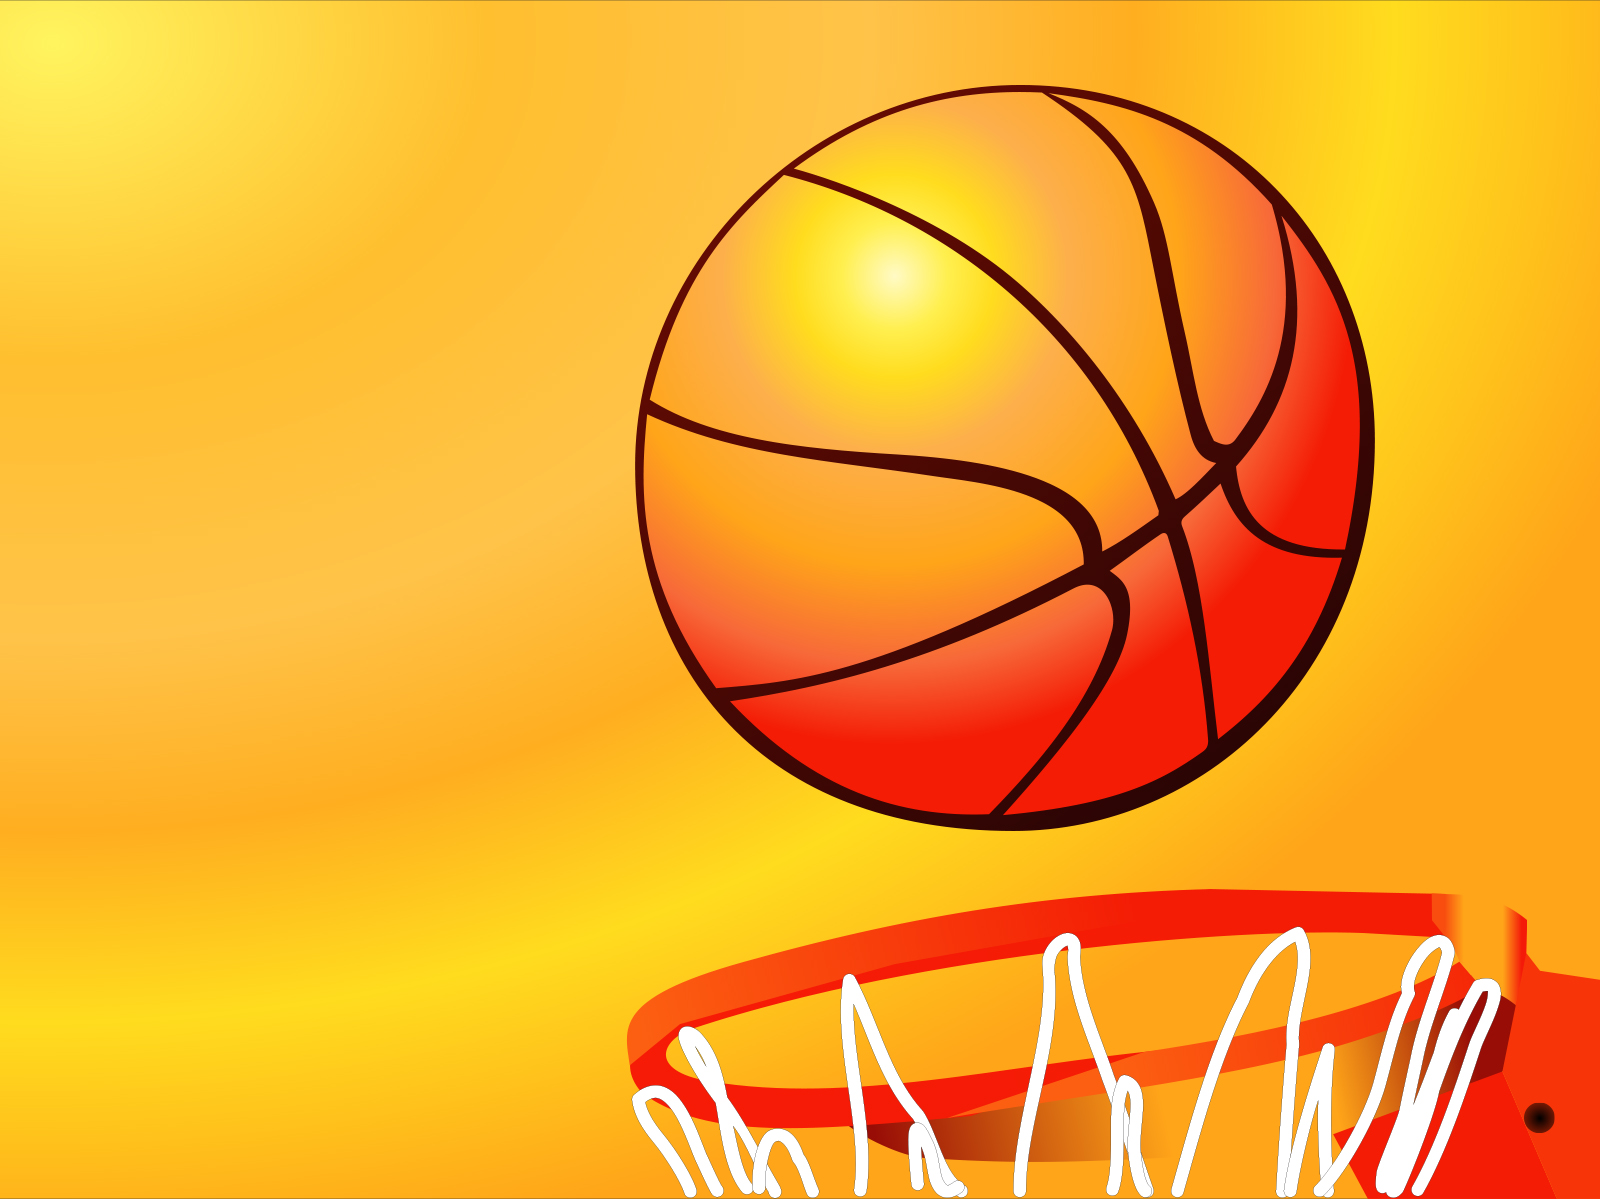 basketball hoop sport backgrounds orange sports yellow templates